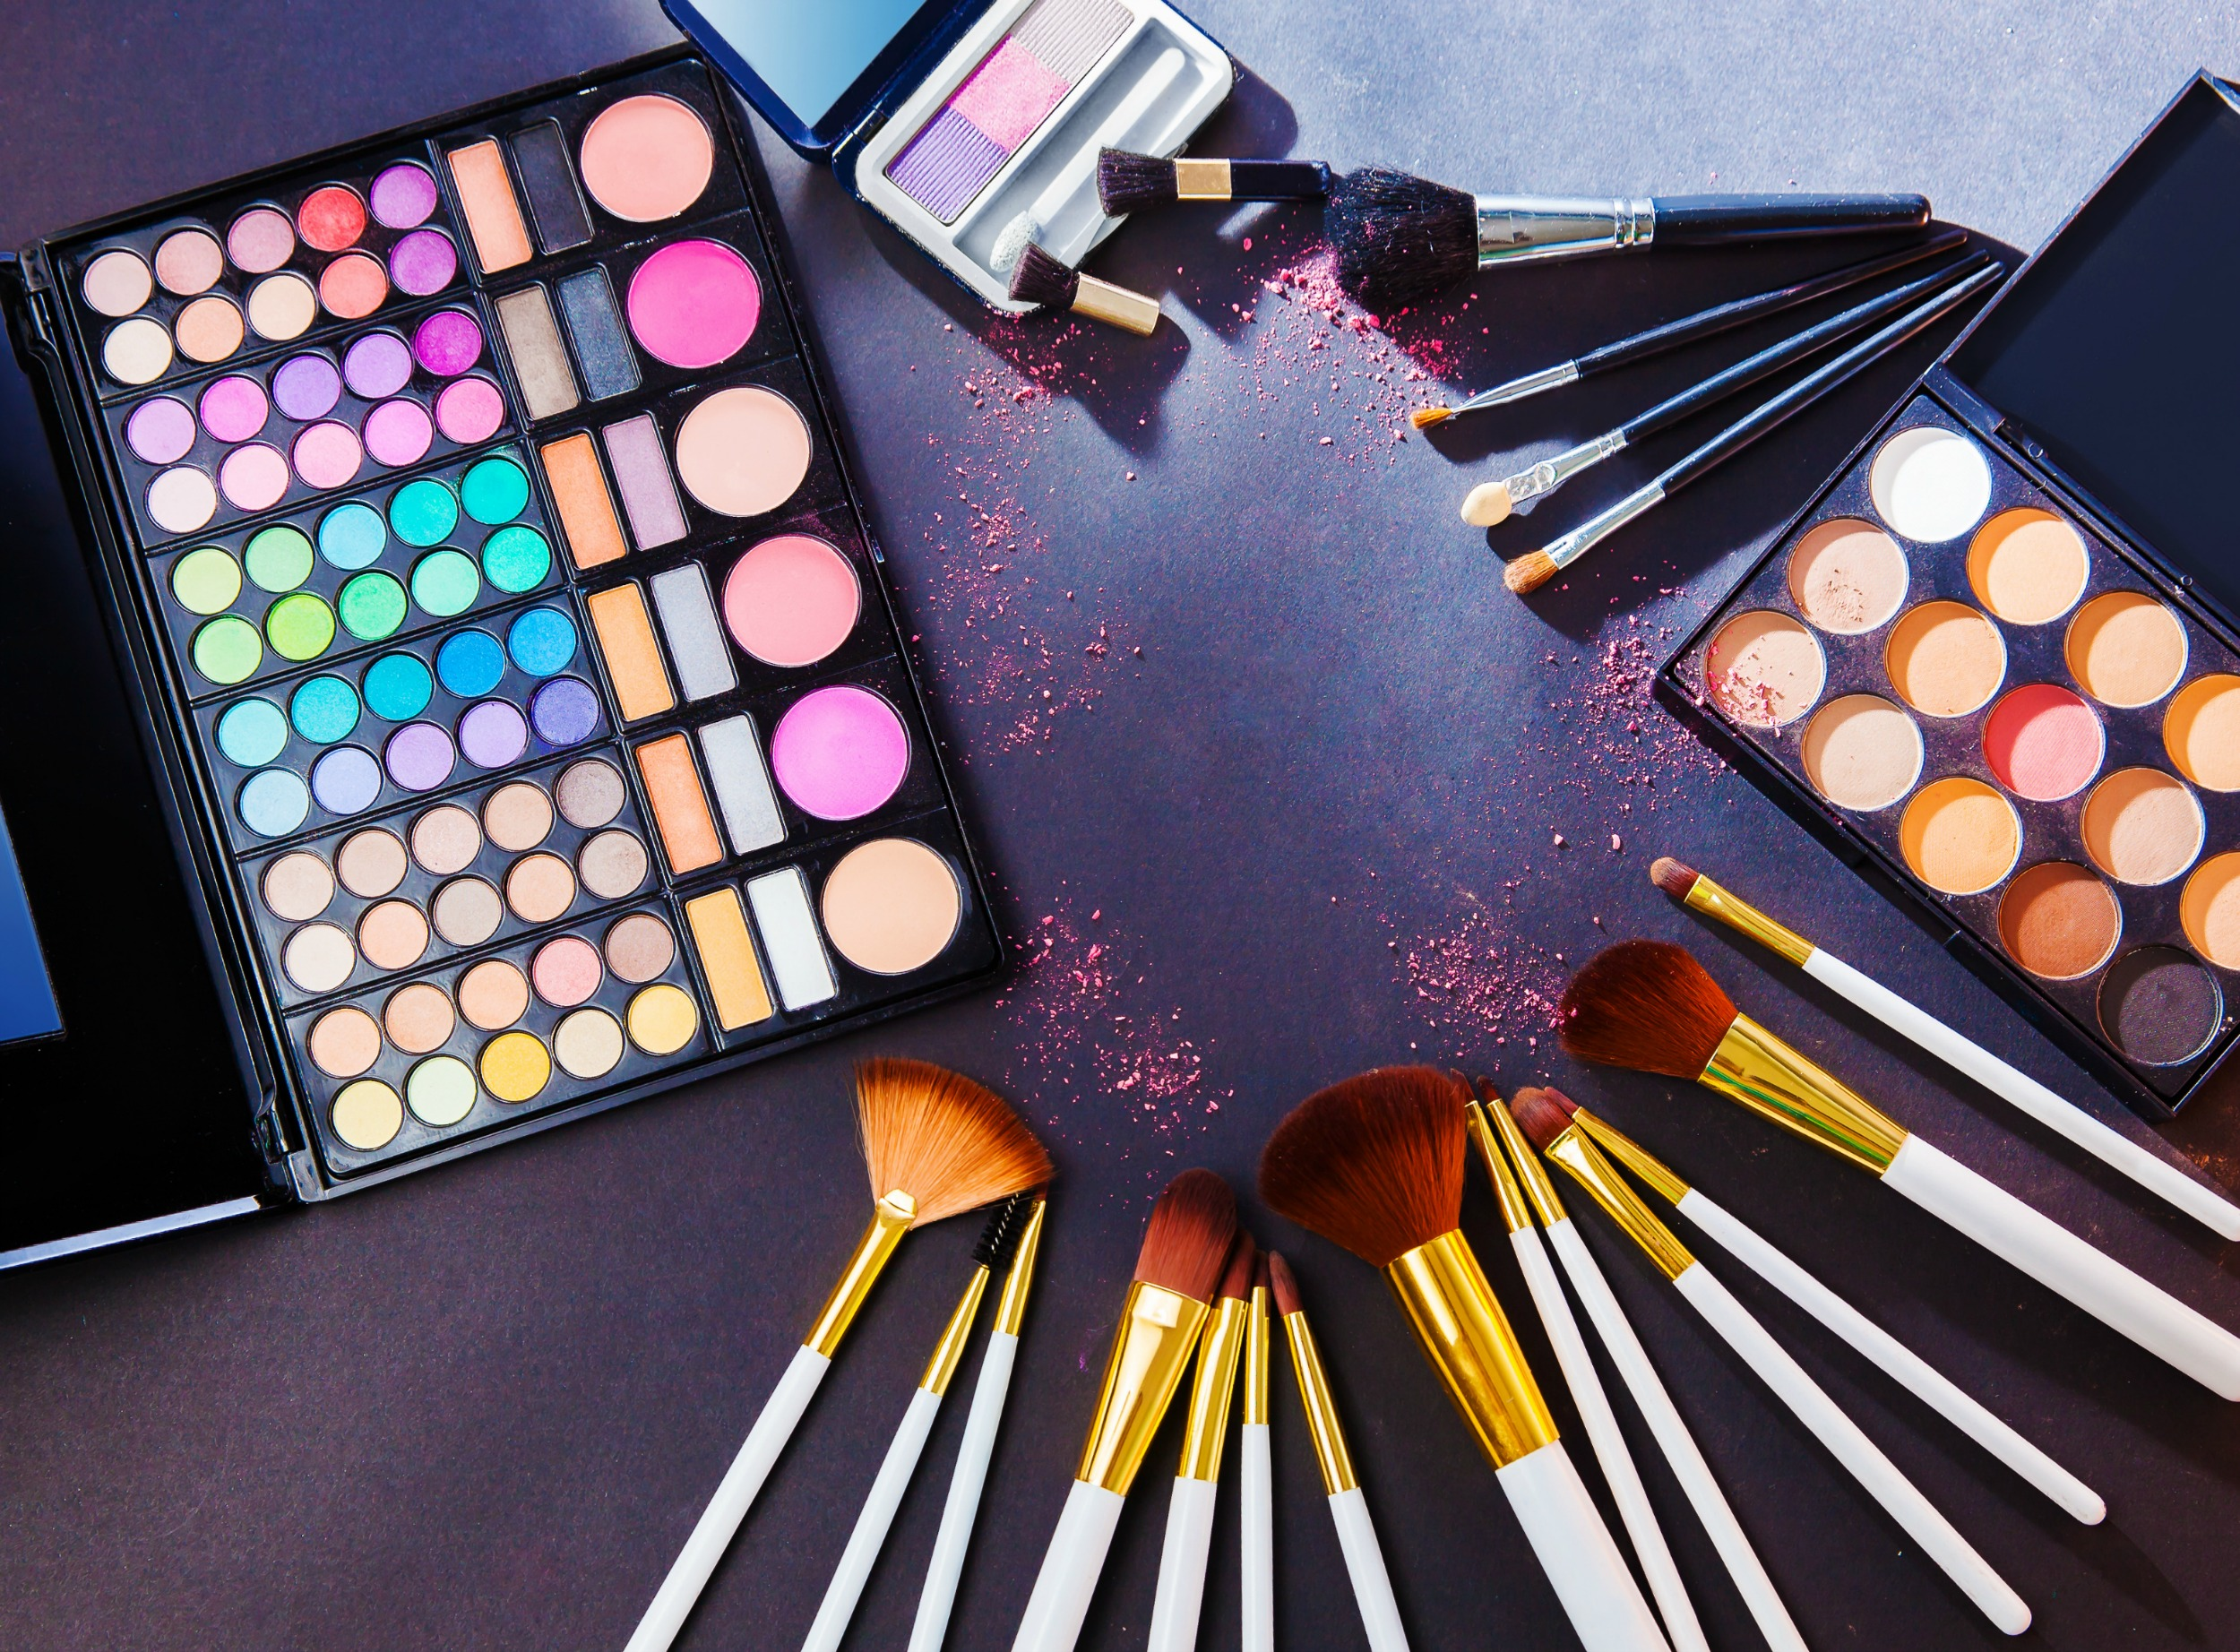 Cheaper alternatives for your favorite makeup